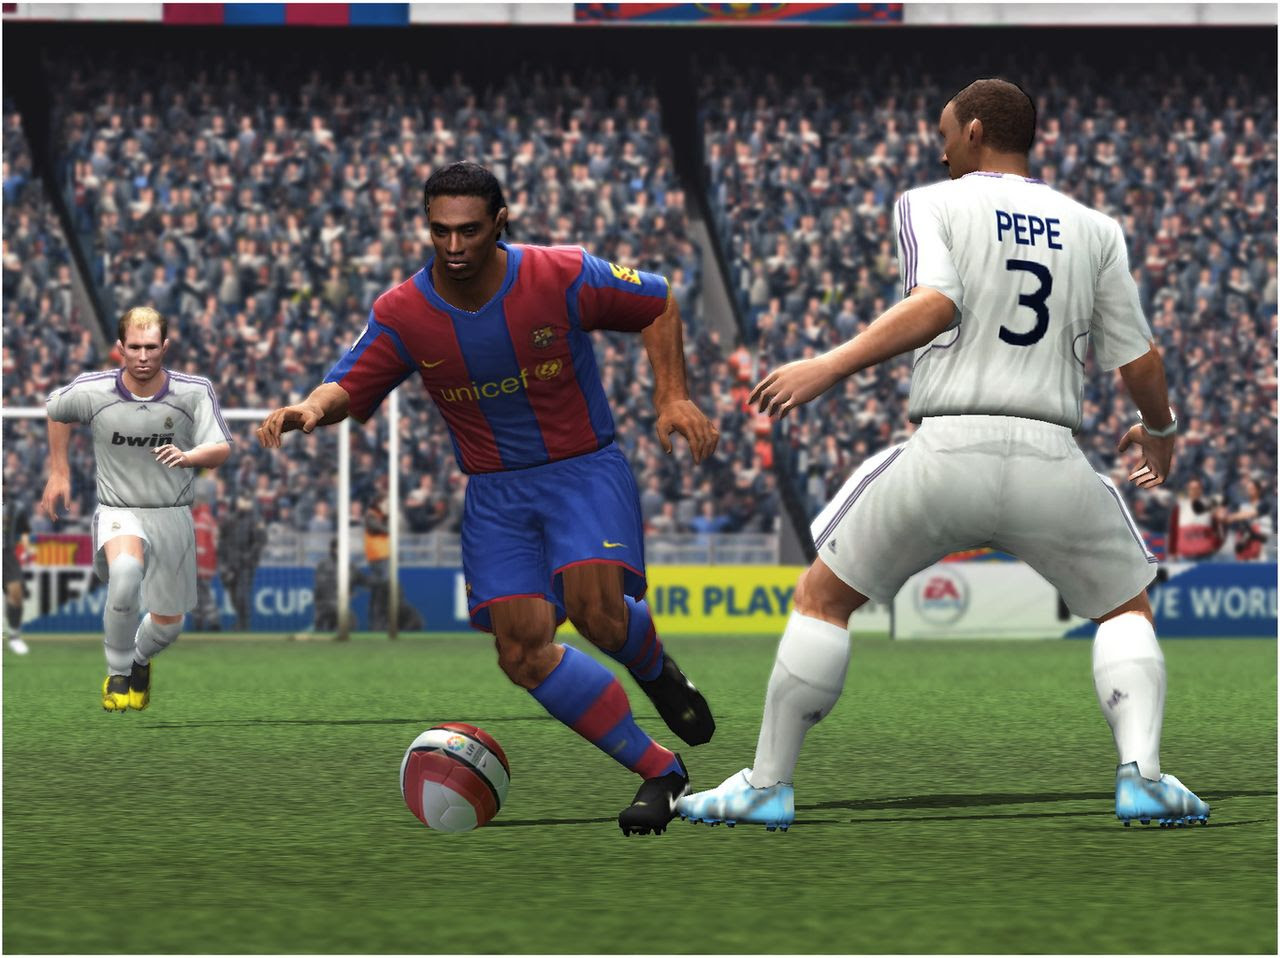 Fifa 09 free download highly compressed pc game full version.